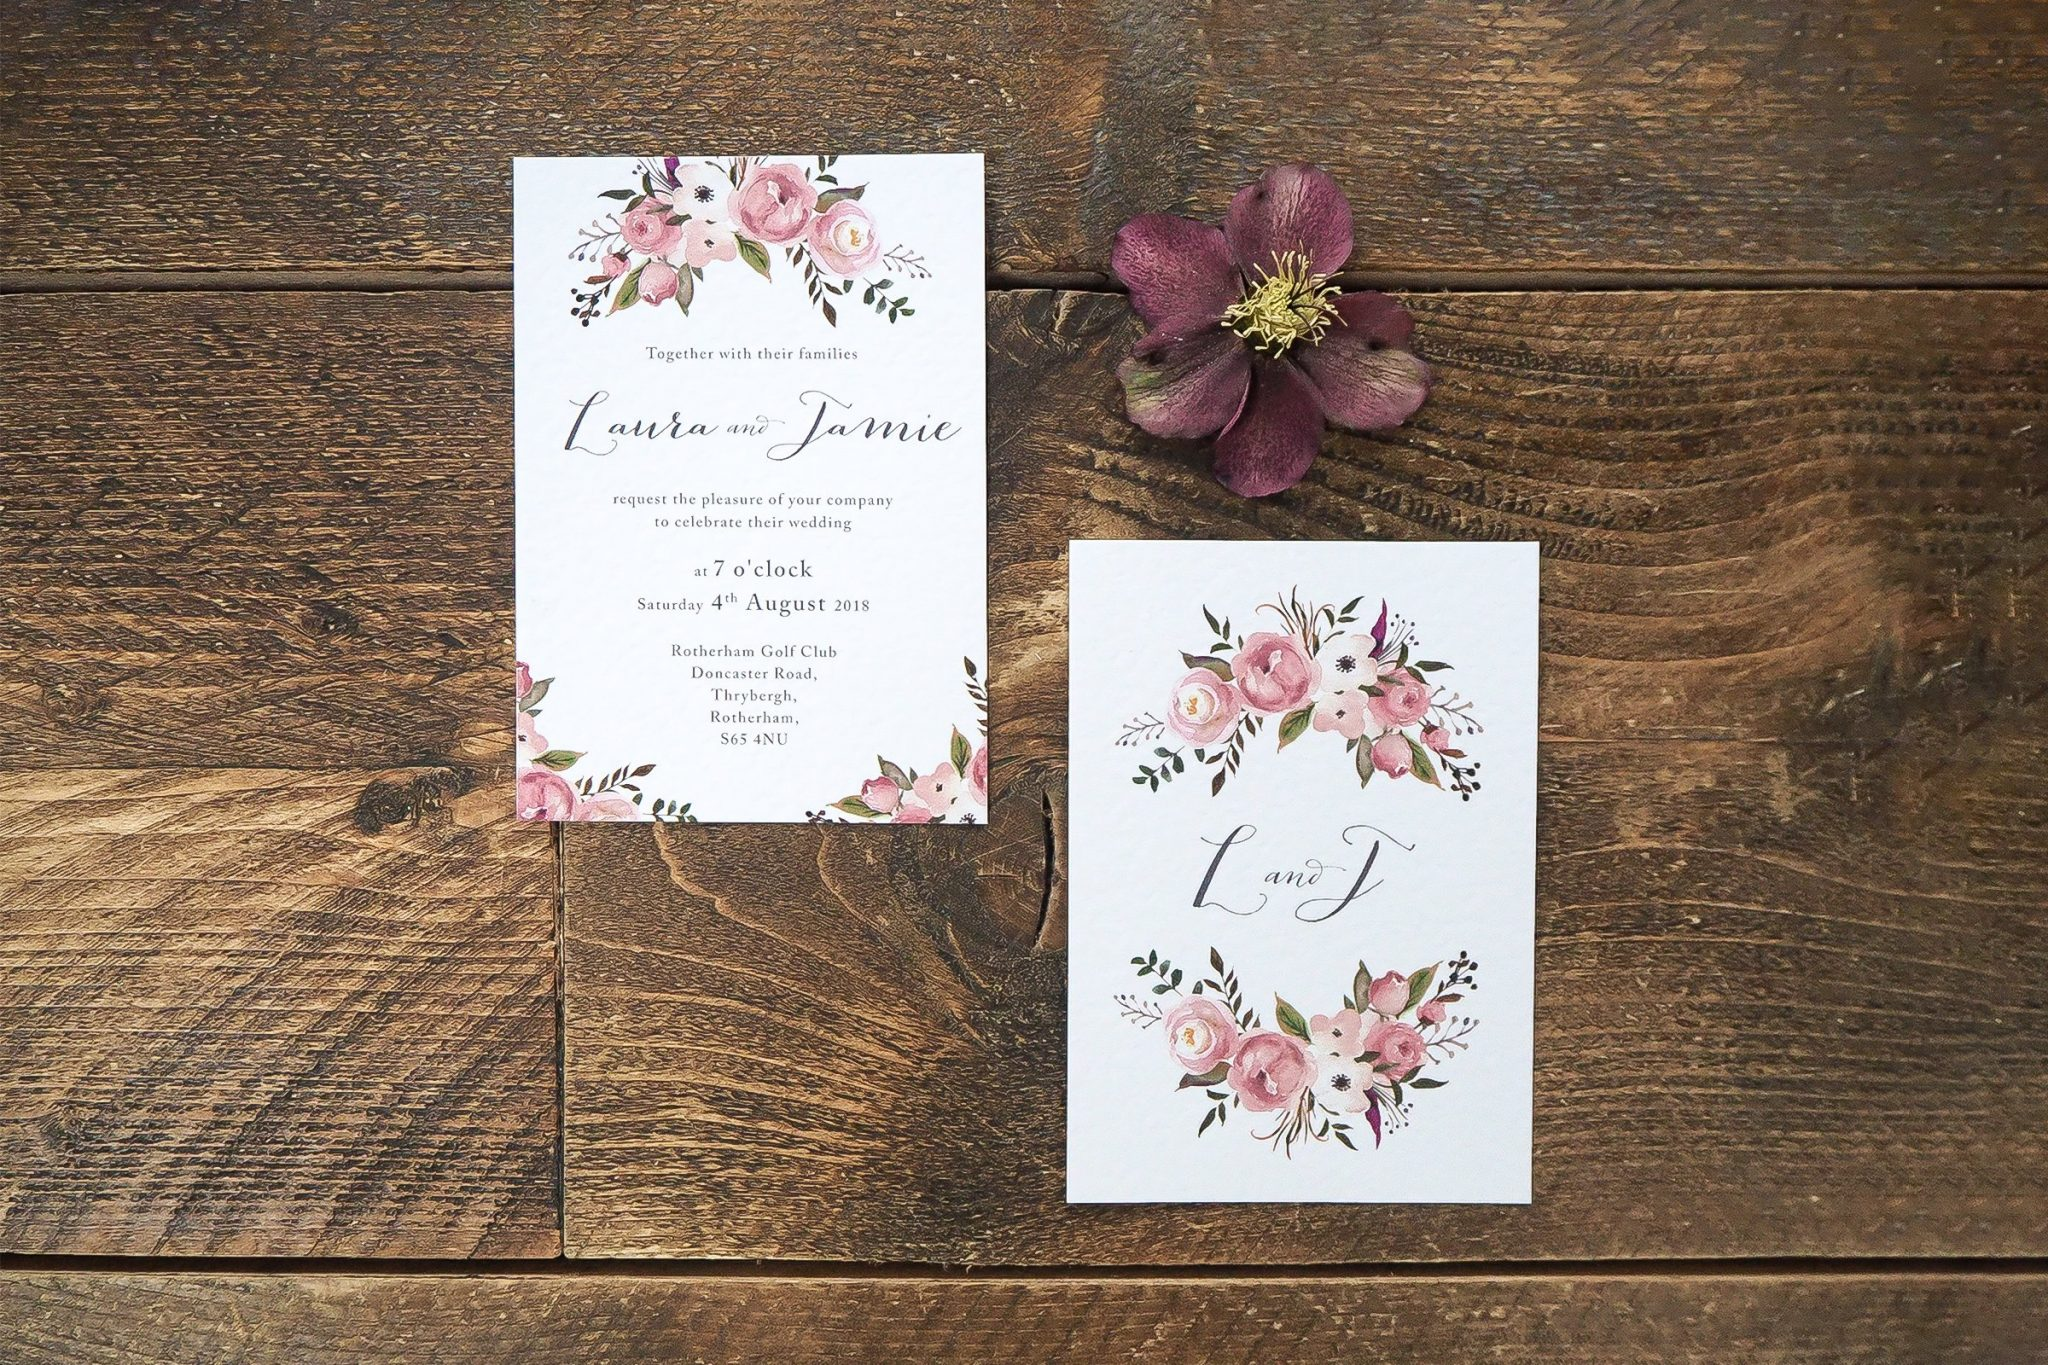 laura and jamie wedding stationery 5